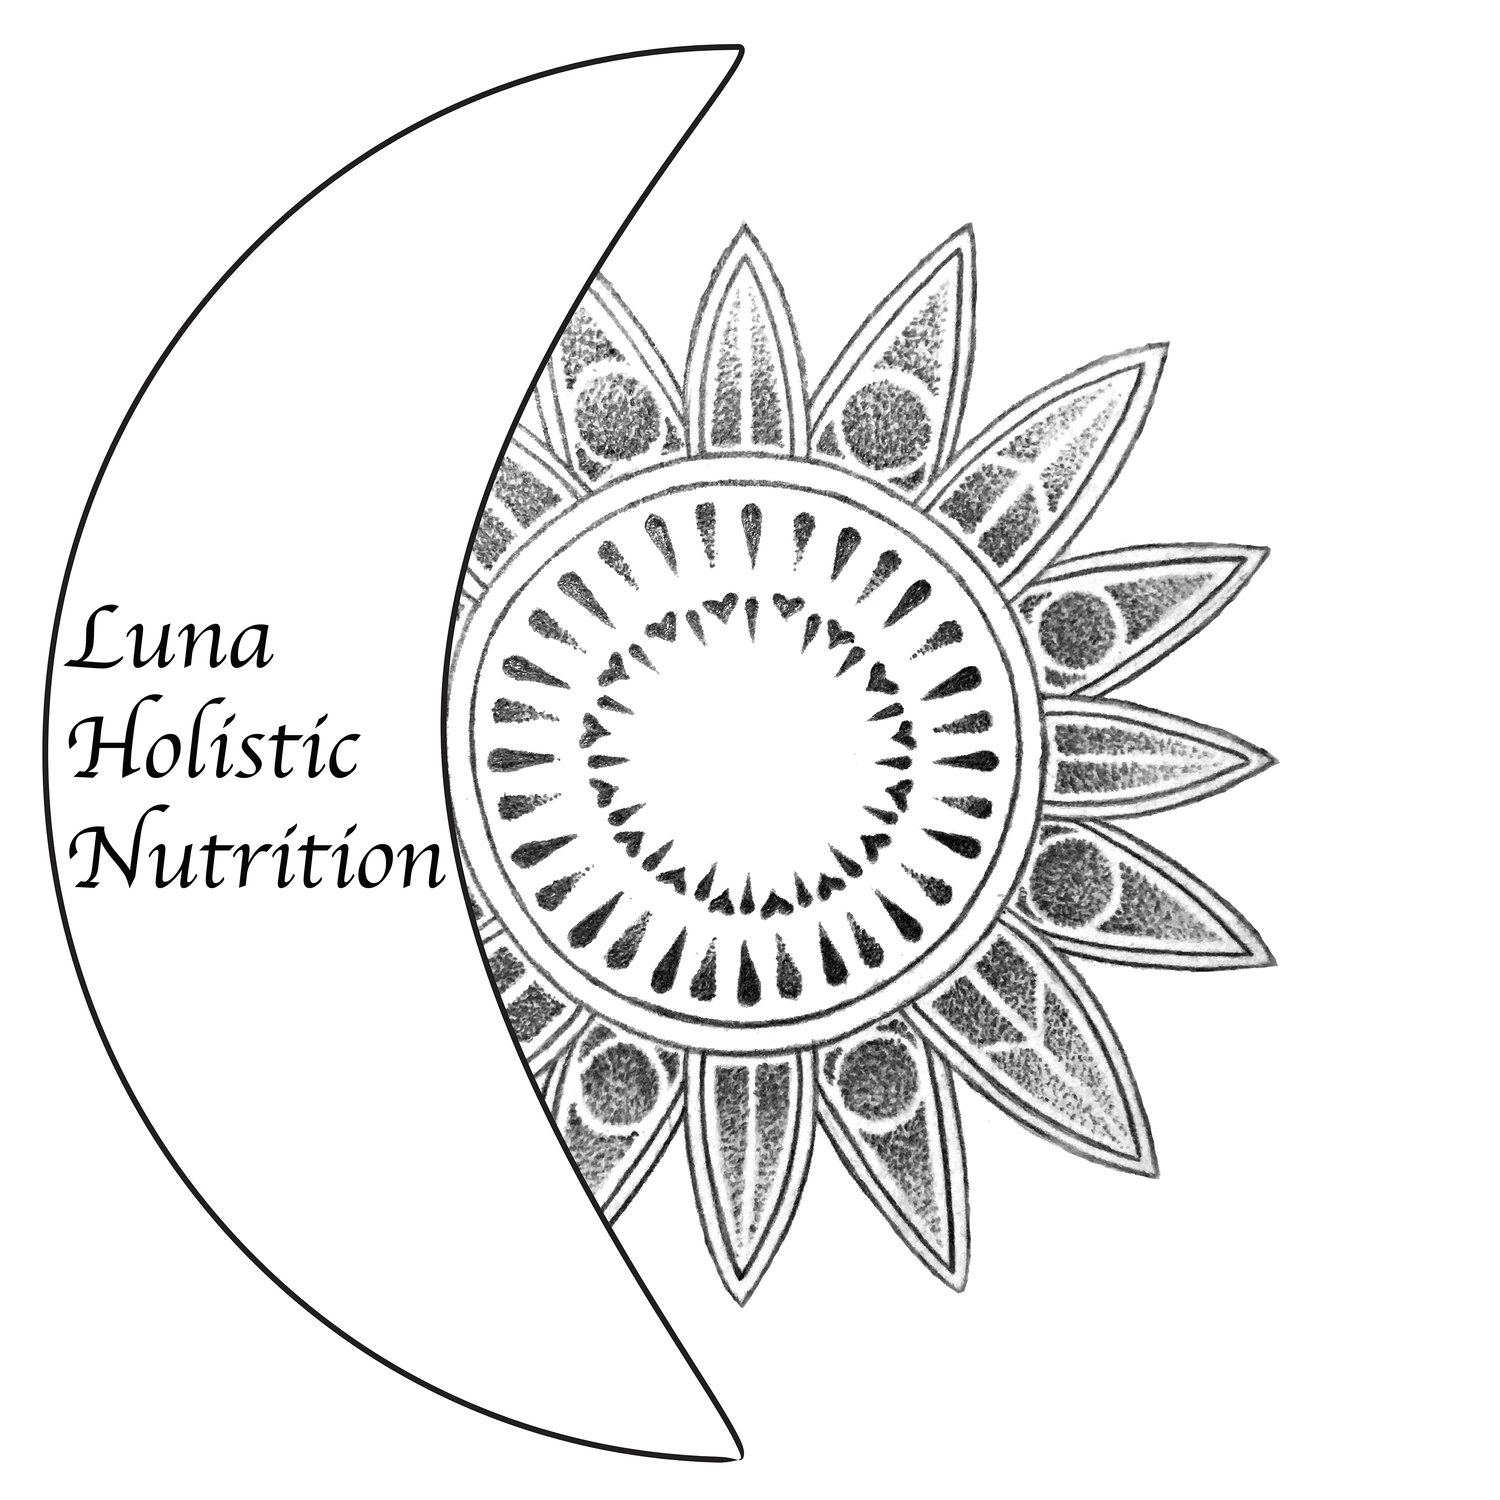 Luna Holistic Nutrition